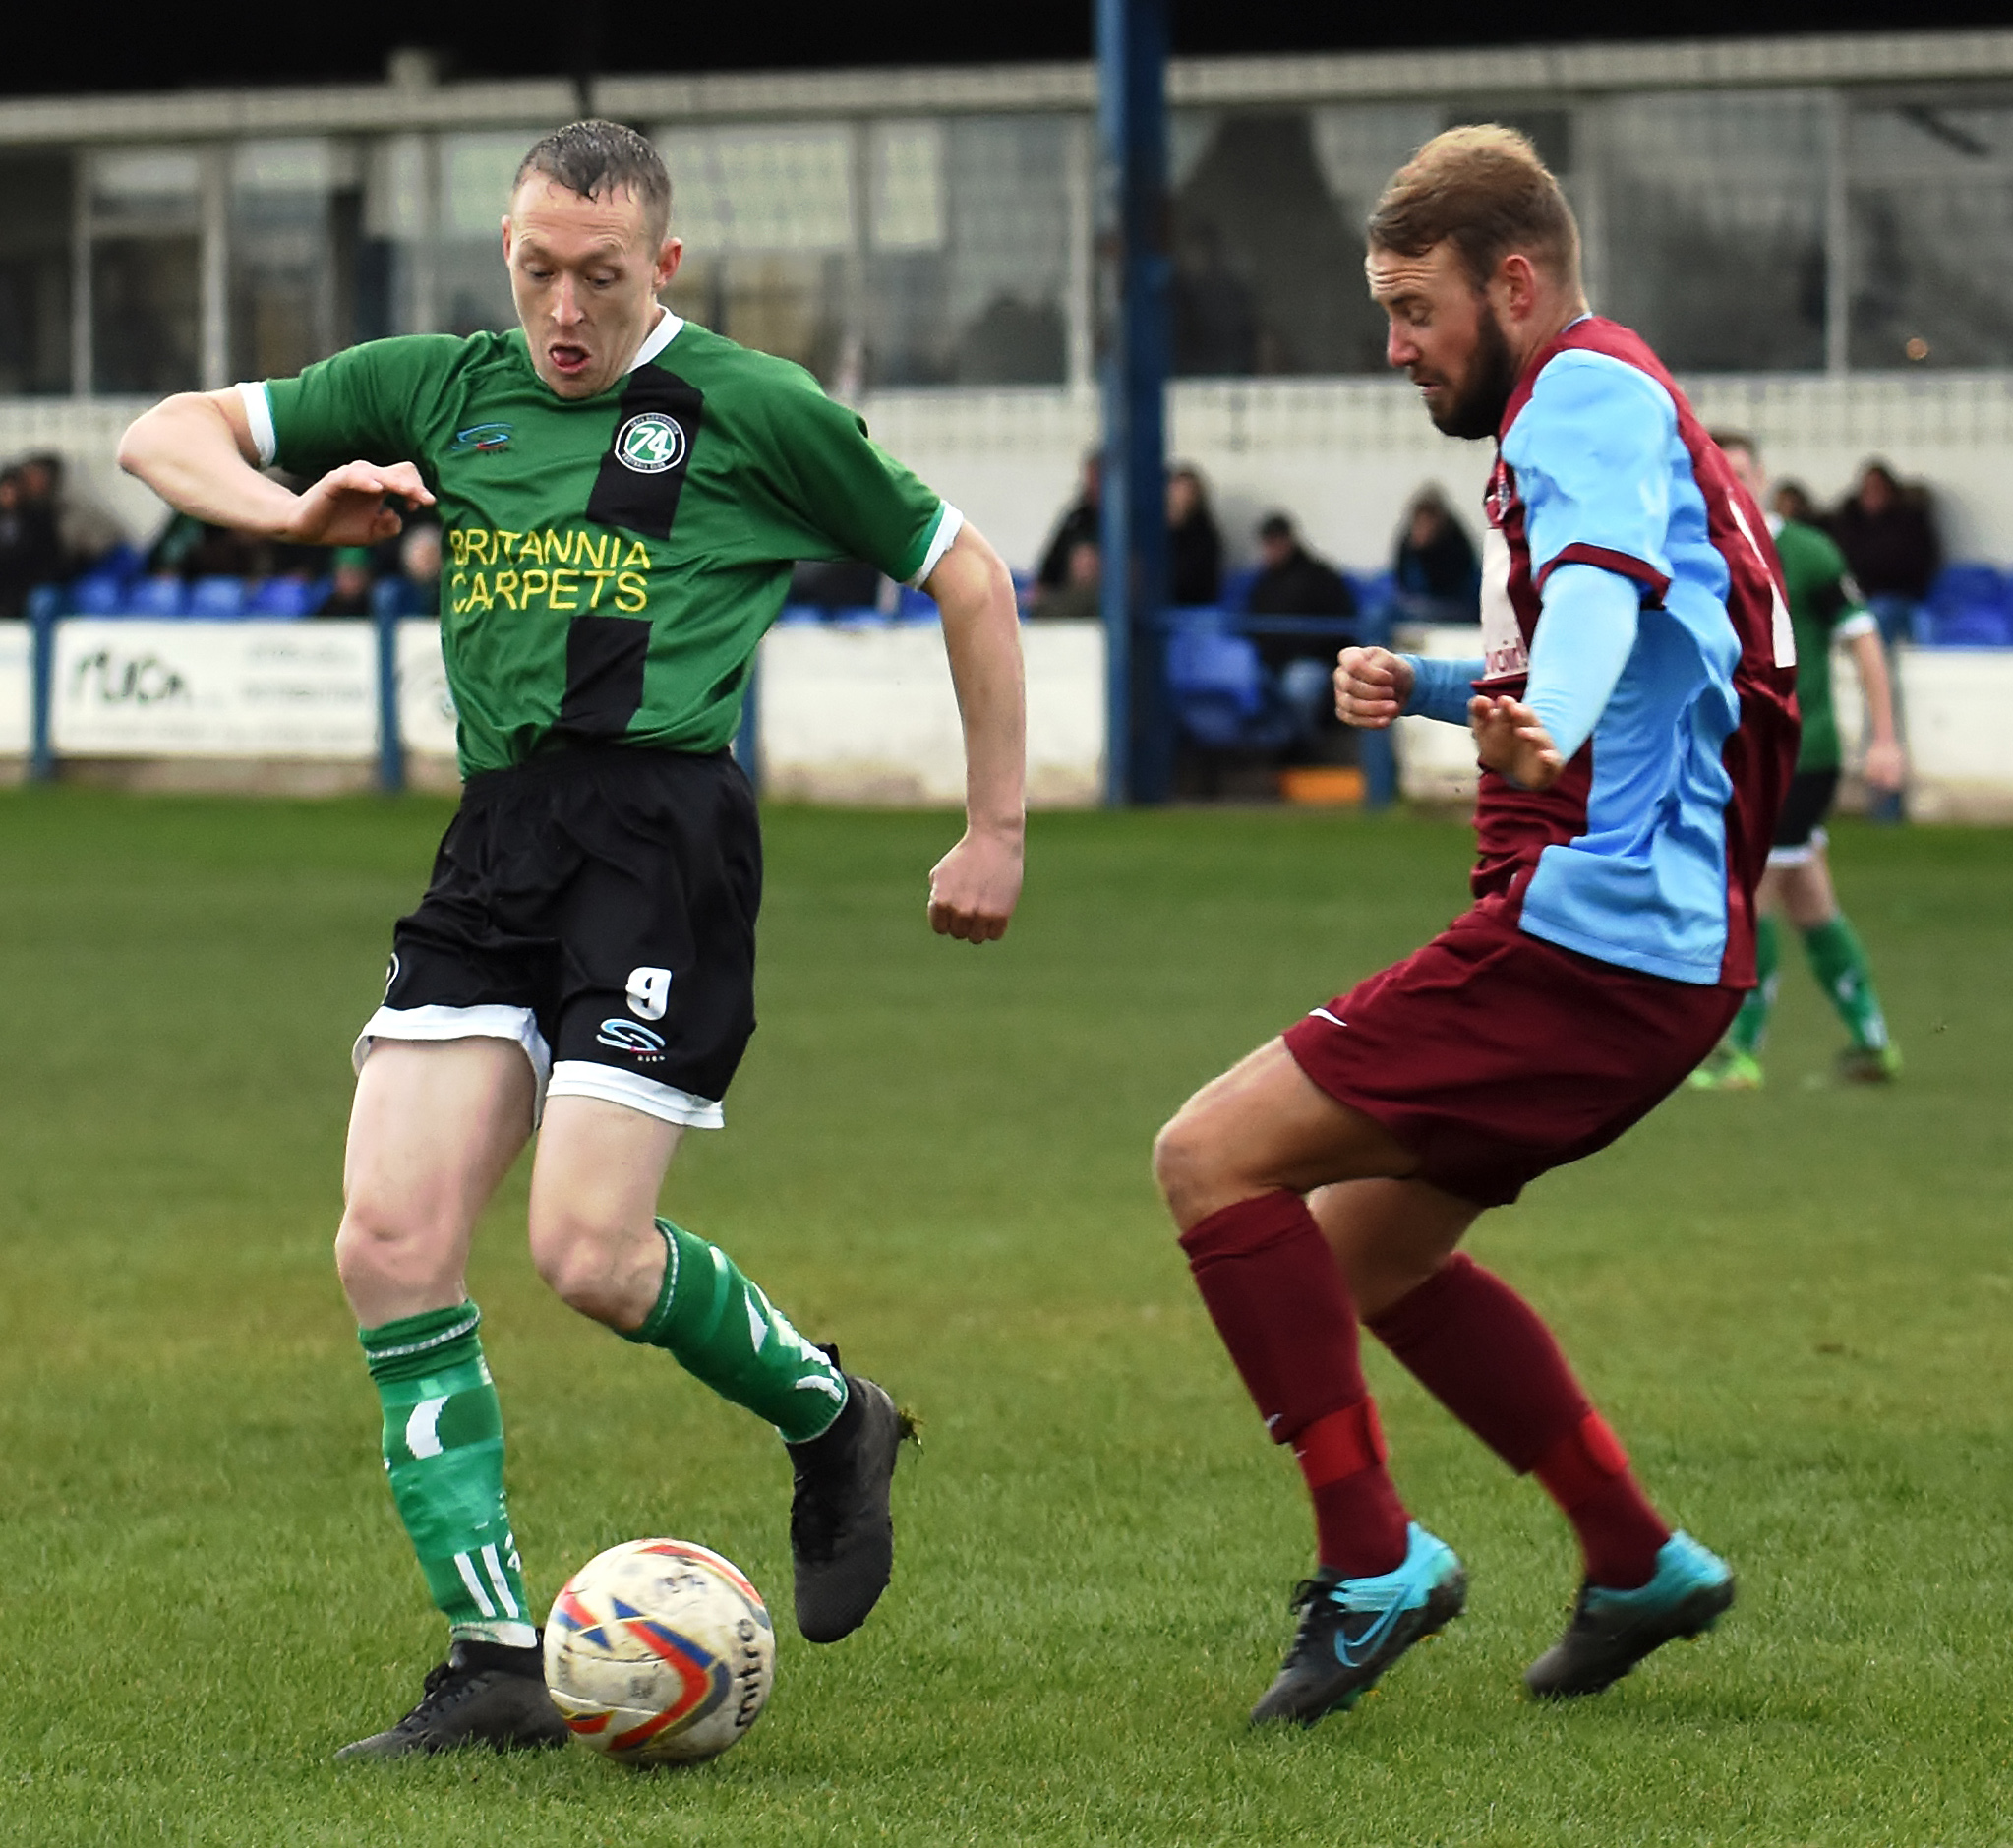 Scott McGowan was 1874 Northwich's match-winner against West Didsbury & Chorlton in the North West Counties League on Saturday. Picture: Ian Dutton